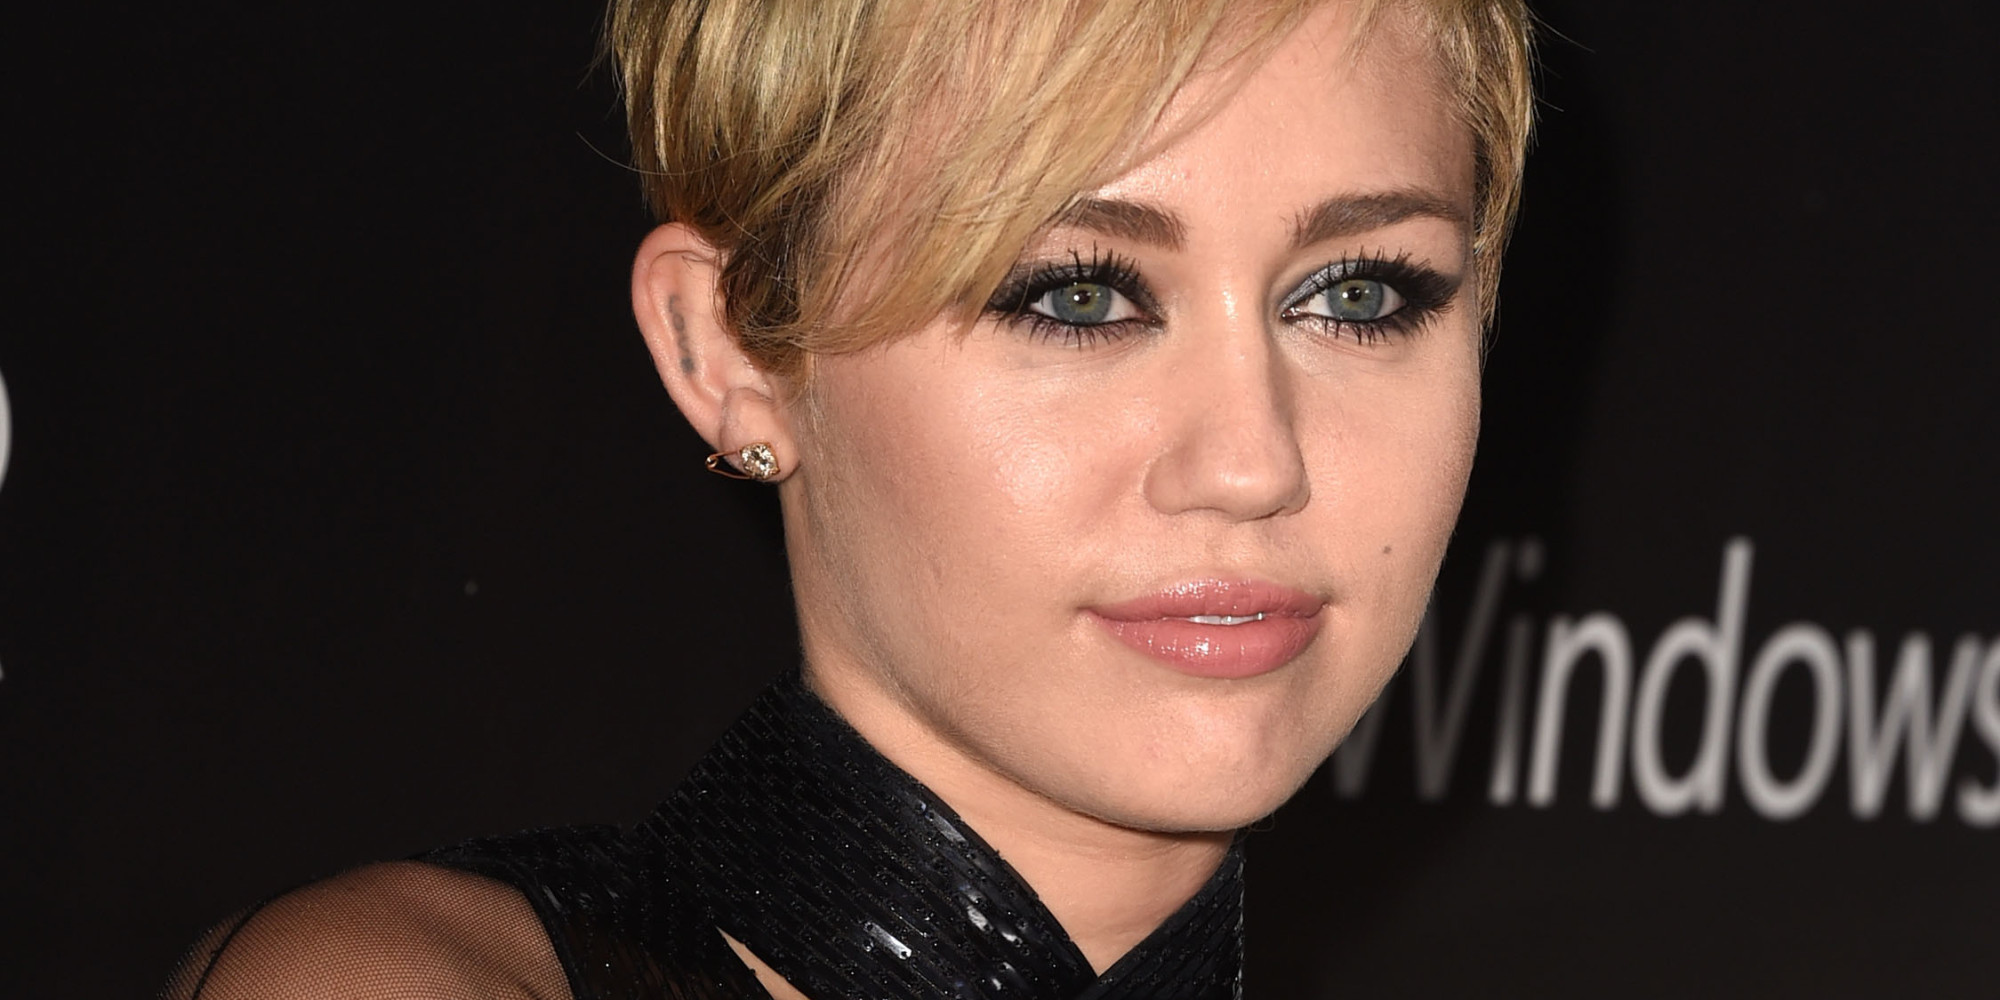 Miley Cyrus' amfAR Gala Dress Looks Difficult To Put On | The ...